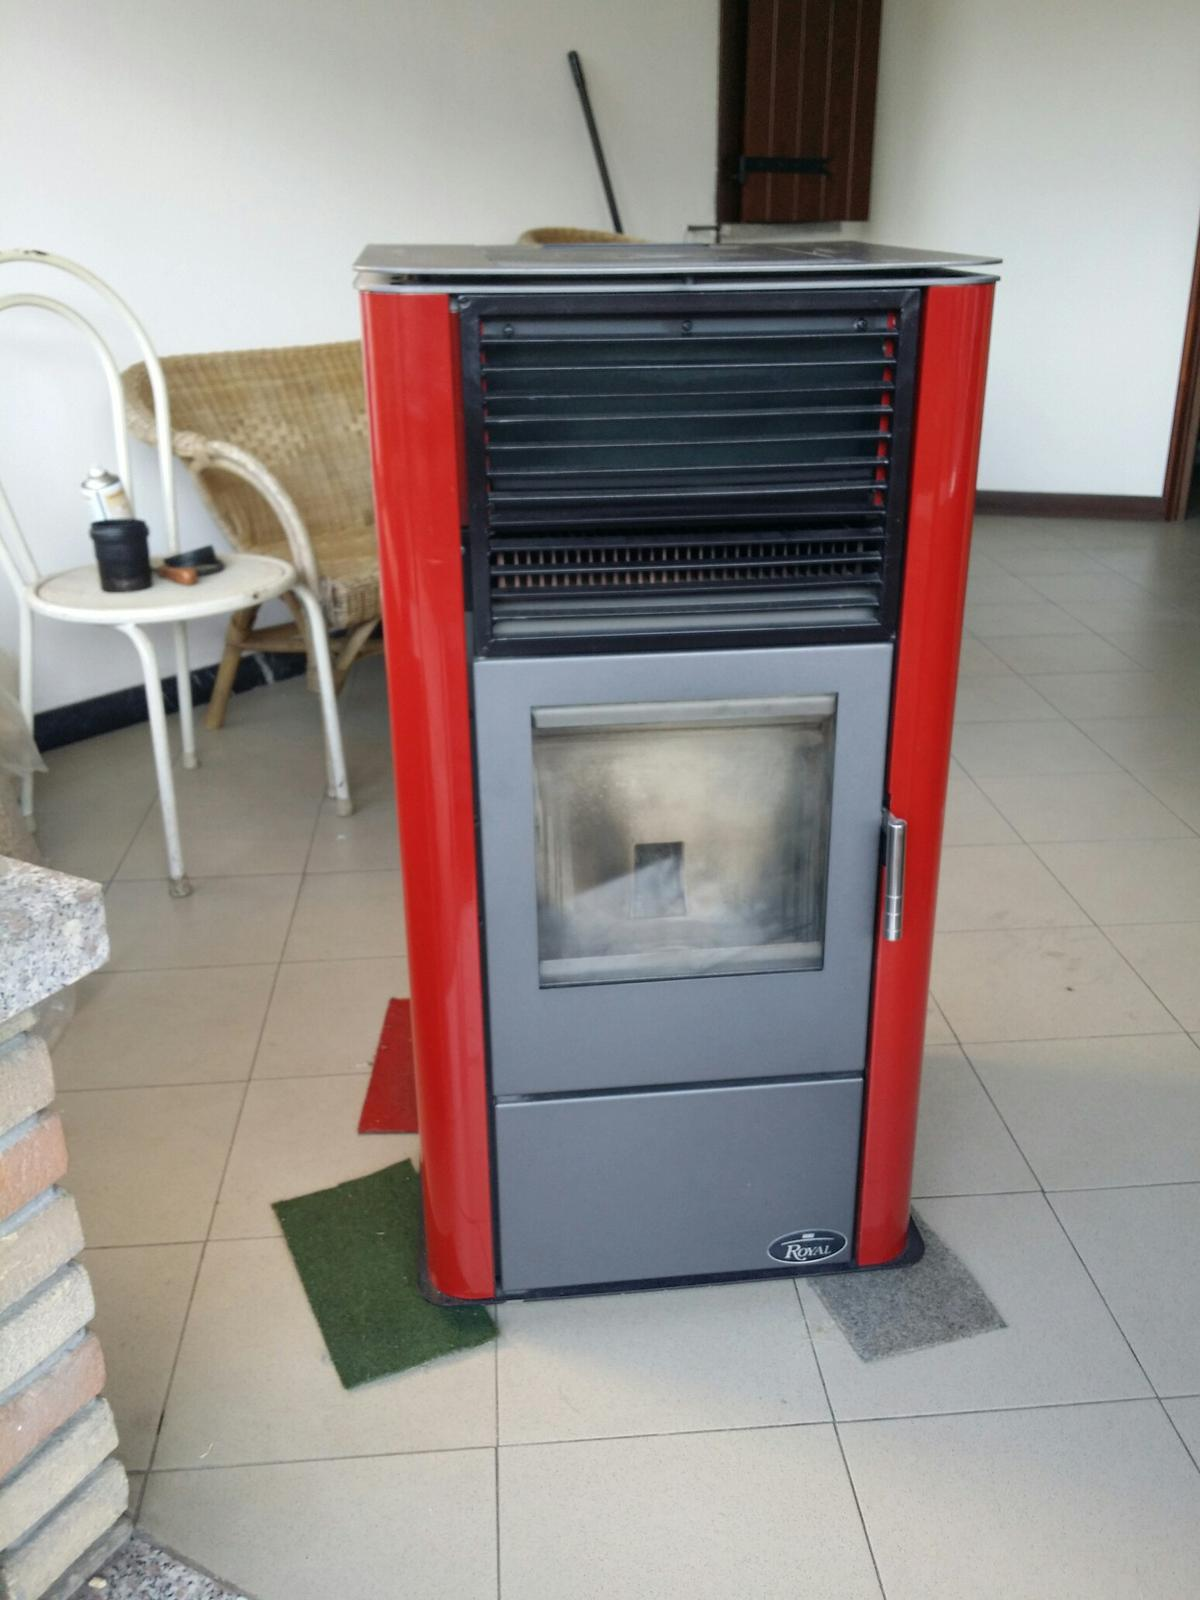 Stufa pellet palazzetti royal klima 9kw in 27022 Casorate Primo for ...